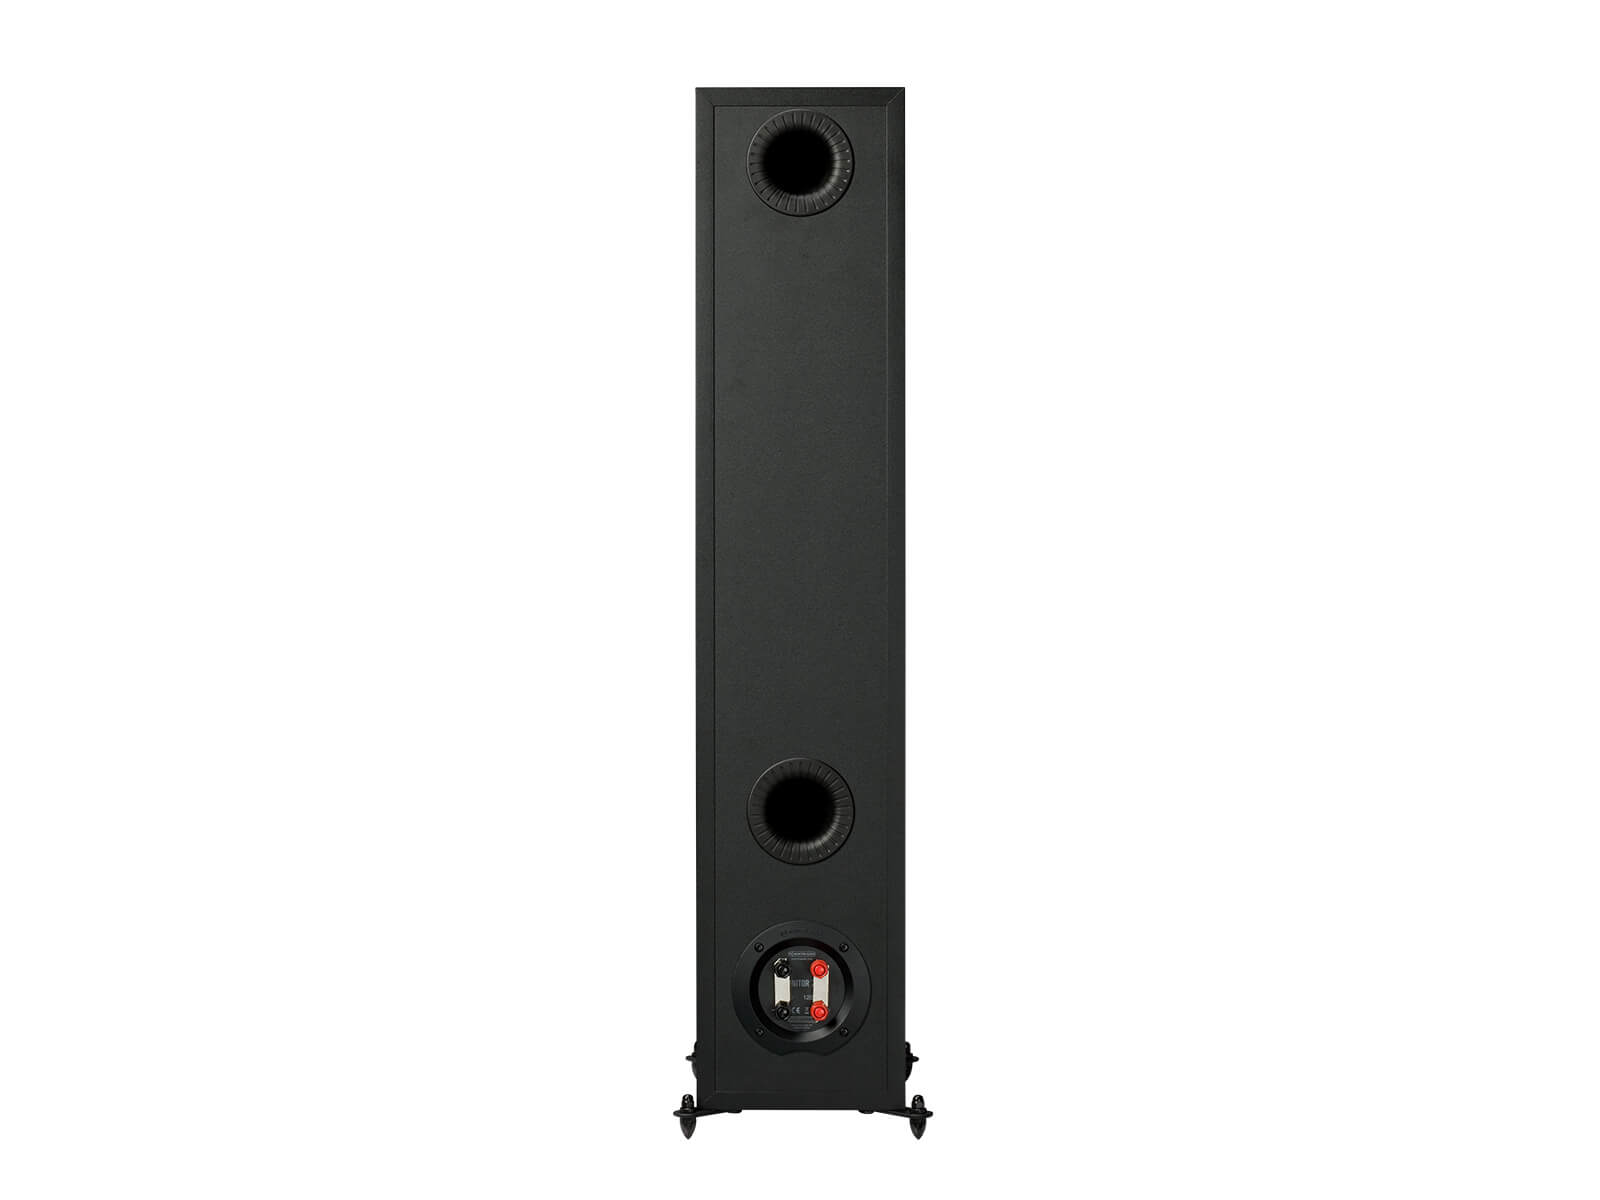 Monitor 200, floorstanding speakers, rear in a black finish.